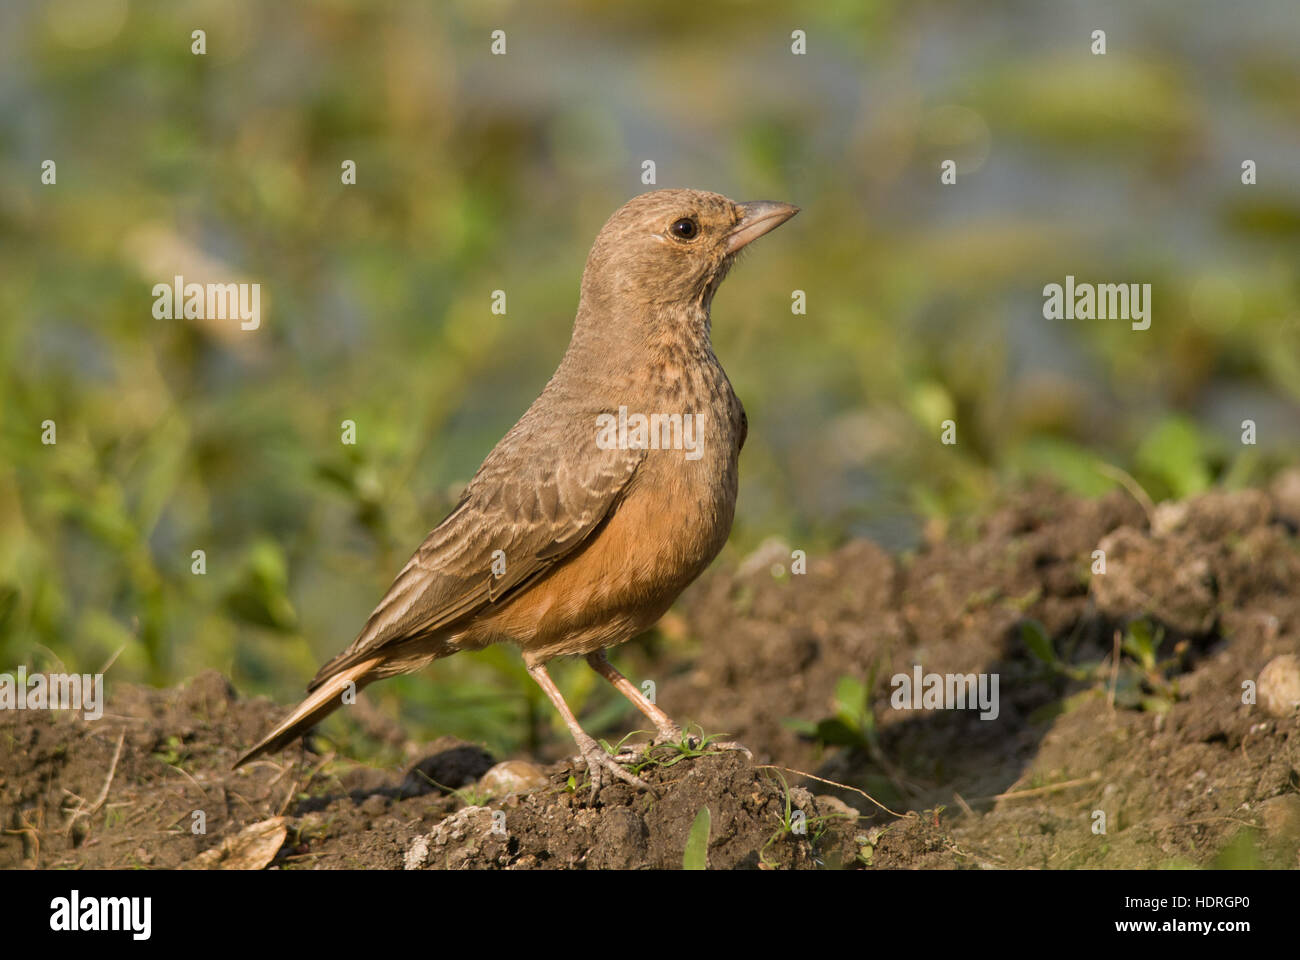 The rufous-tailed lark (Ammomanes phoenicura), also sometimes called the rufous-tailed finch-lark at Pashan Lake - Stock Image